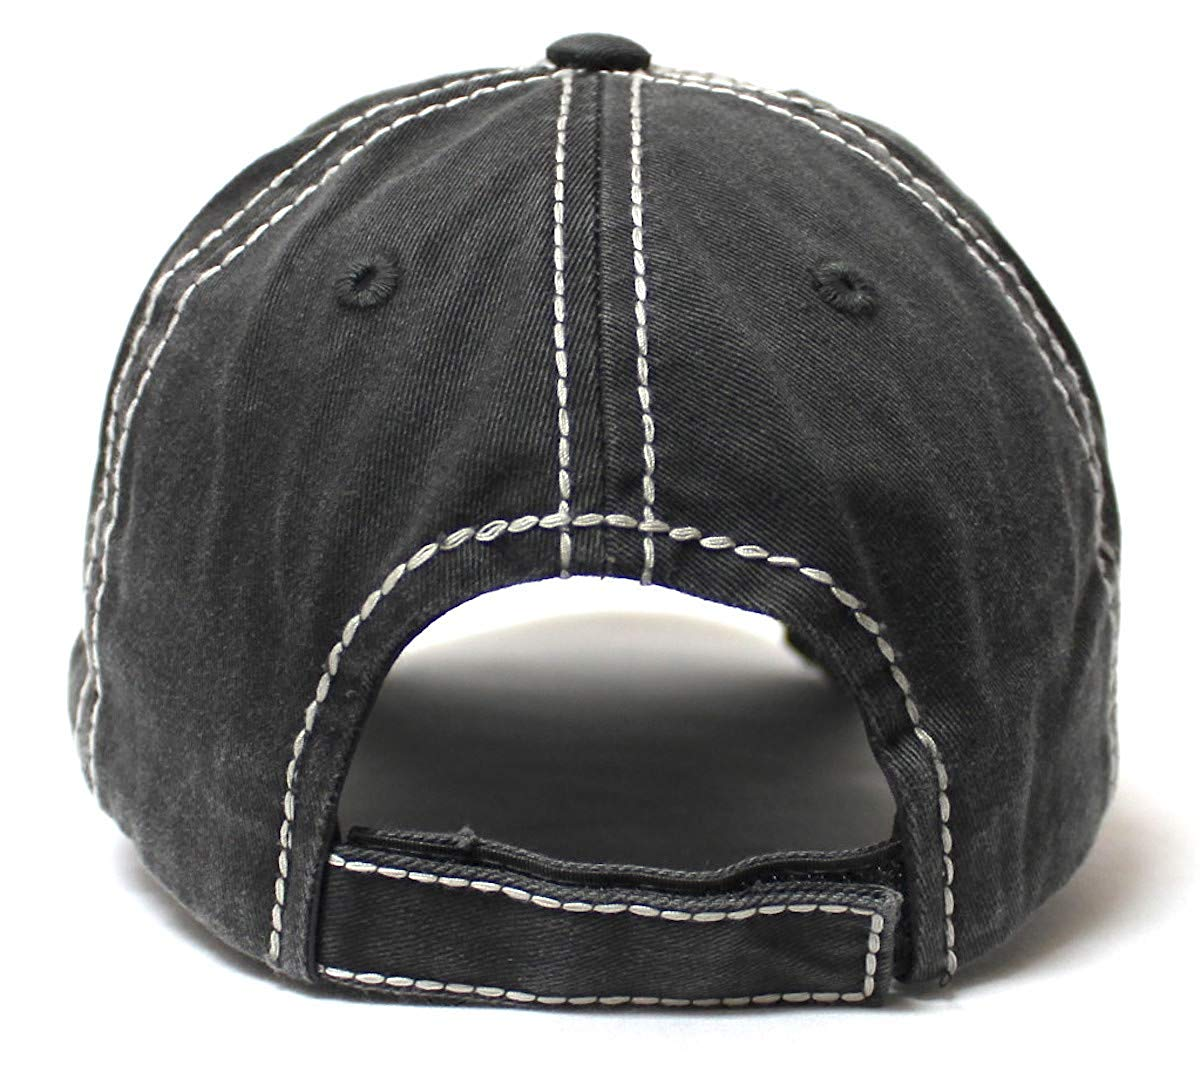 Classic Country Western Ballcap Rodeo Mama Monogram Patch Embroidery Adjustable Baseball Hat, Vintage Black - Caps 'N Vintage